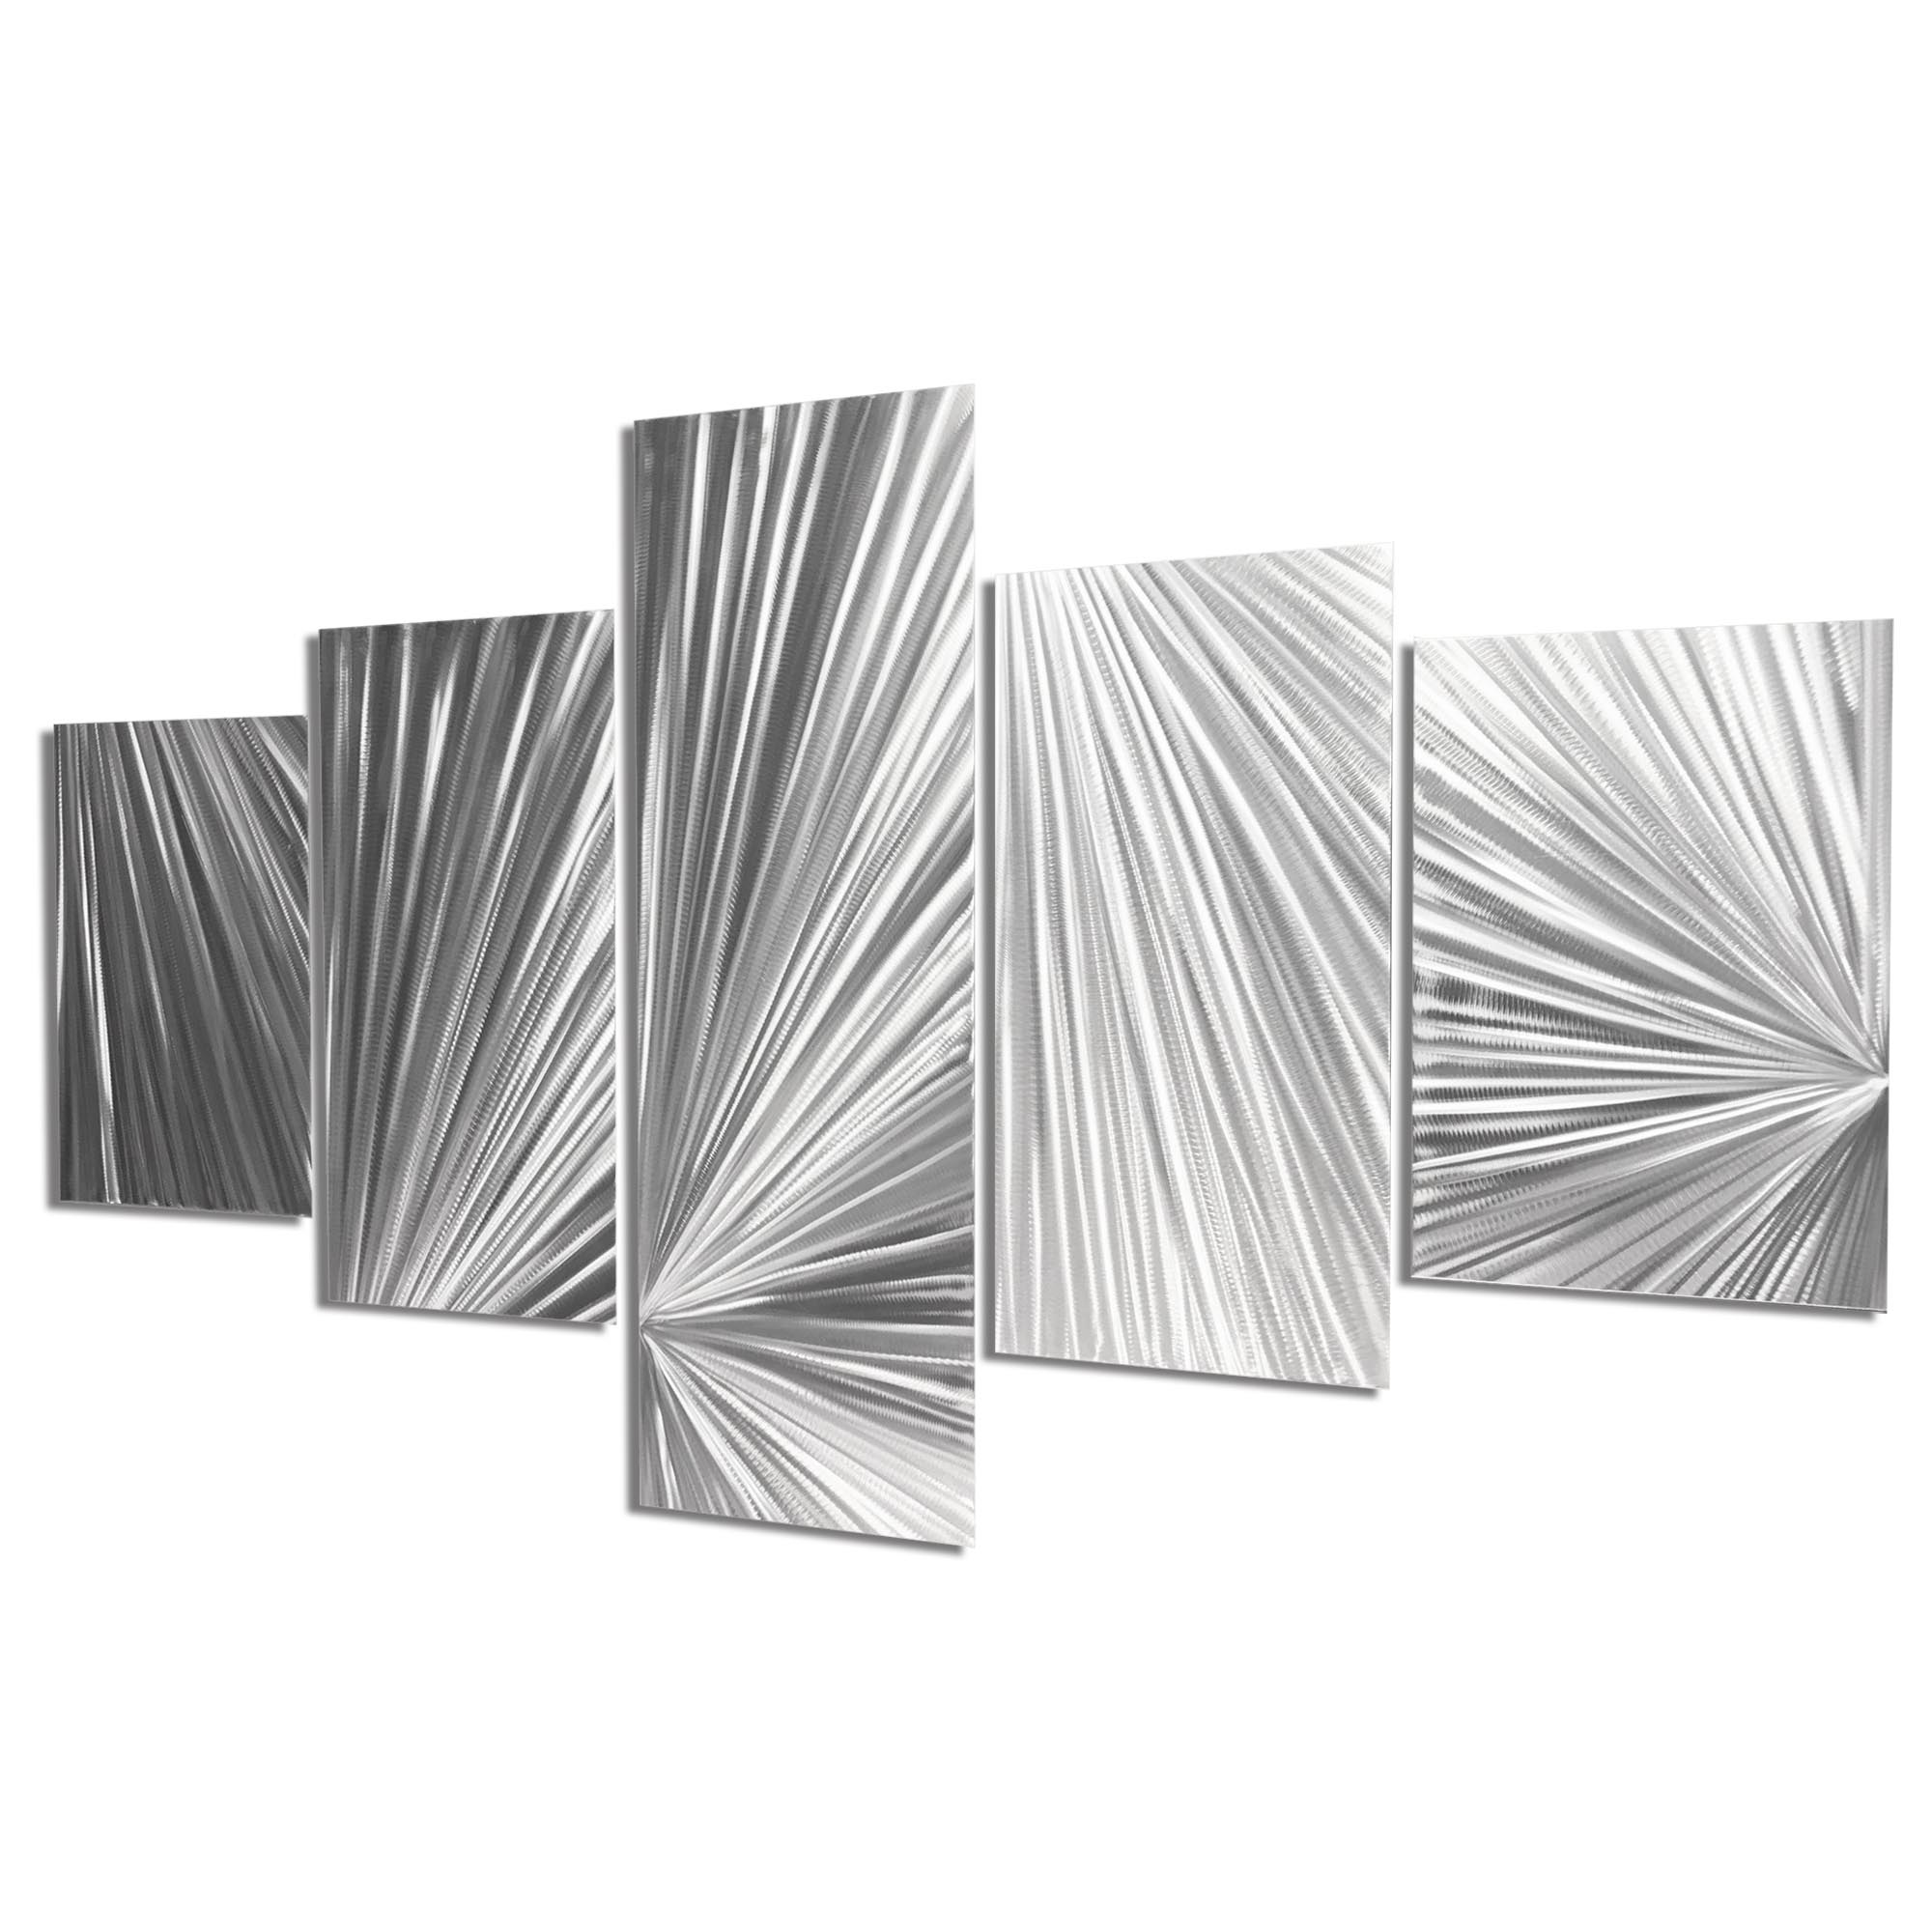 Columnar Light 64x36in. Natural Aluminum Abstract Decor - Image 2